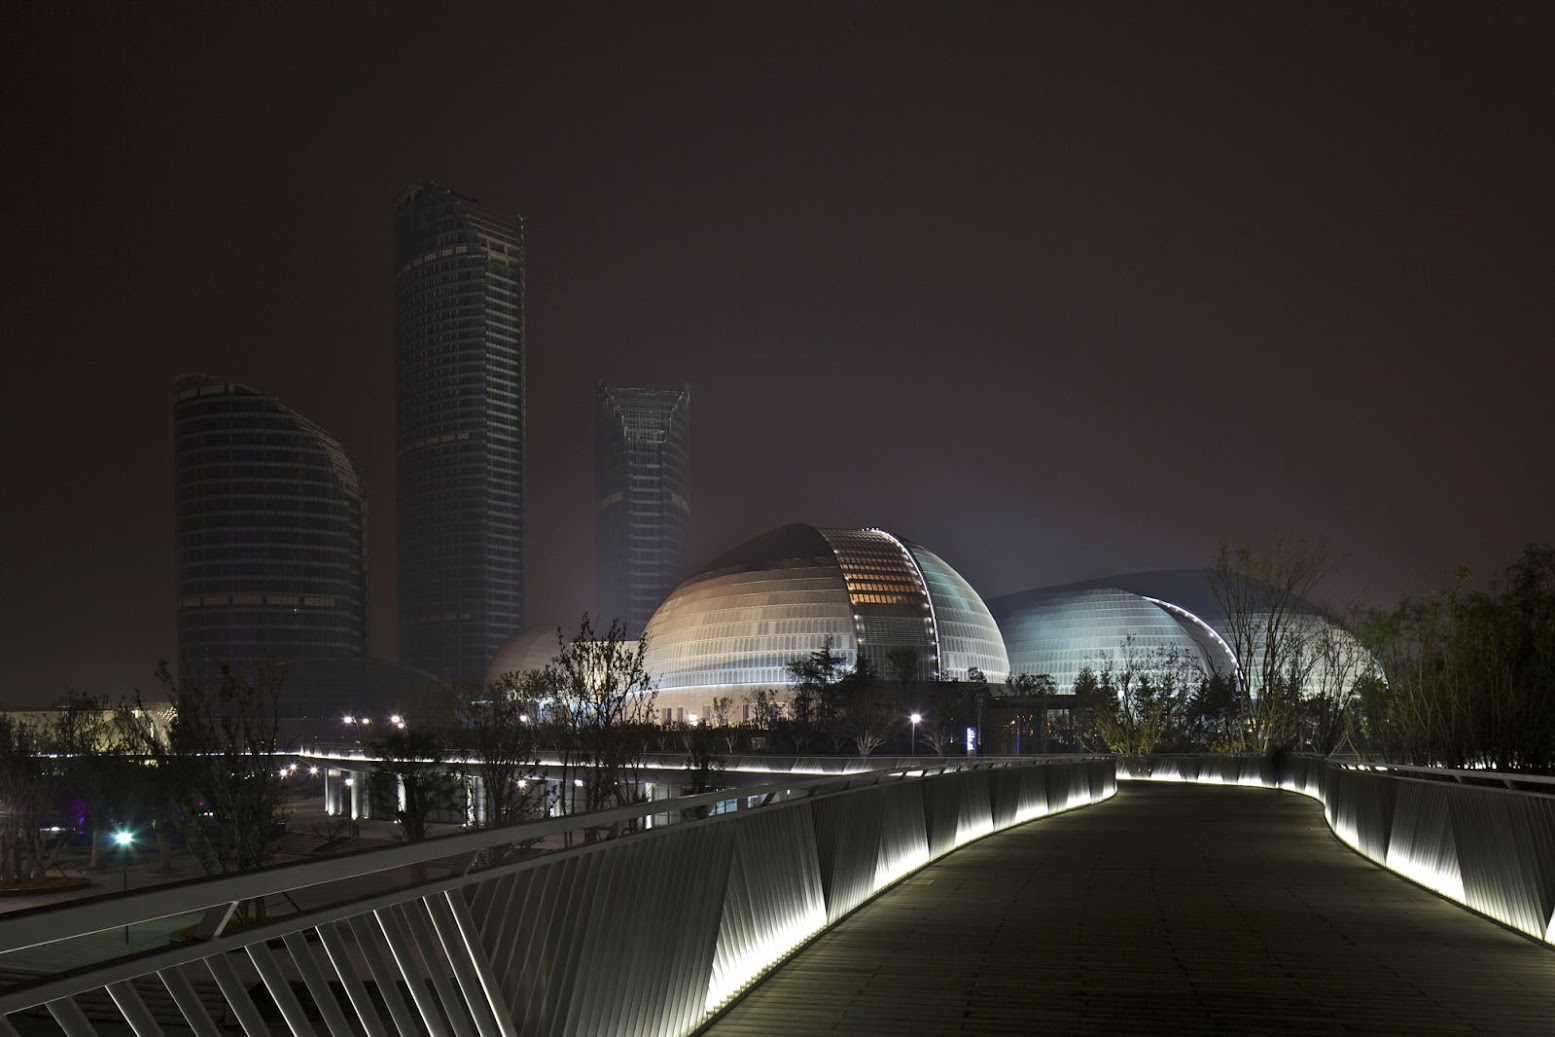 Jinan, Sciantung, Cina: [JINAN GRAND THEATER BY PAUL ANDREU ARCHITECTE]